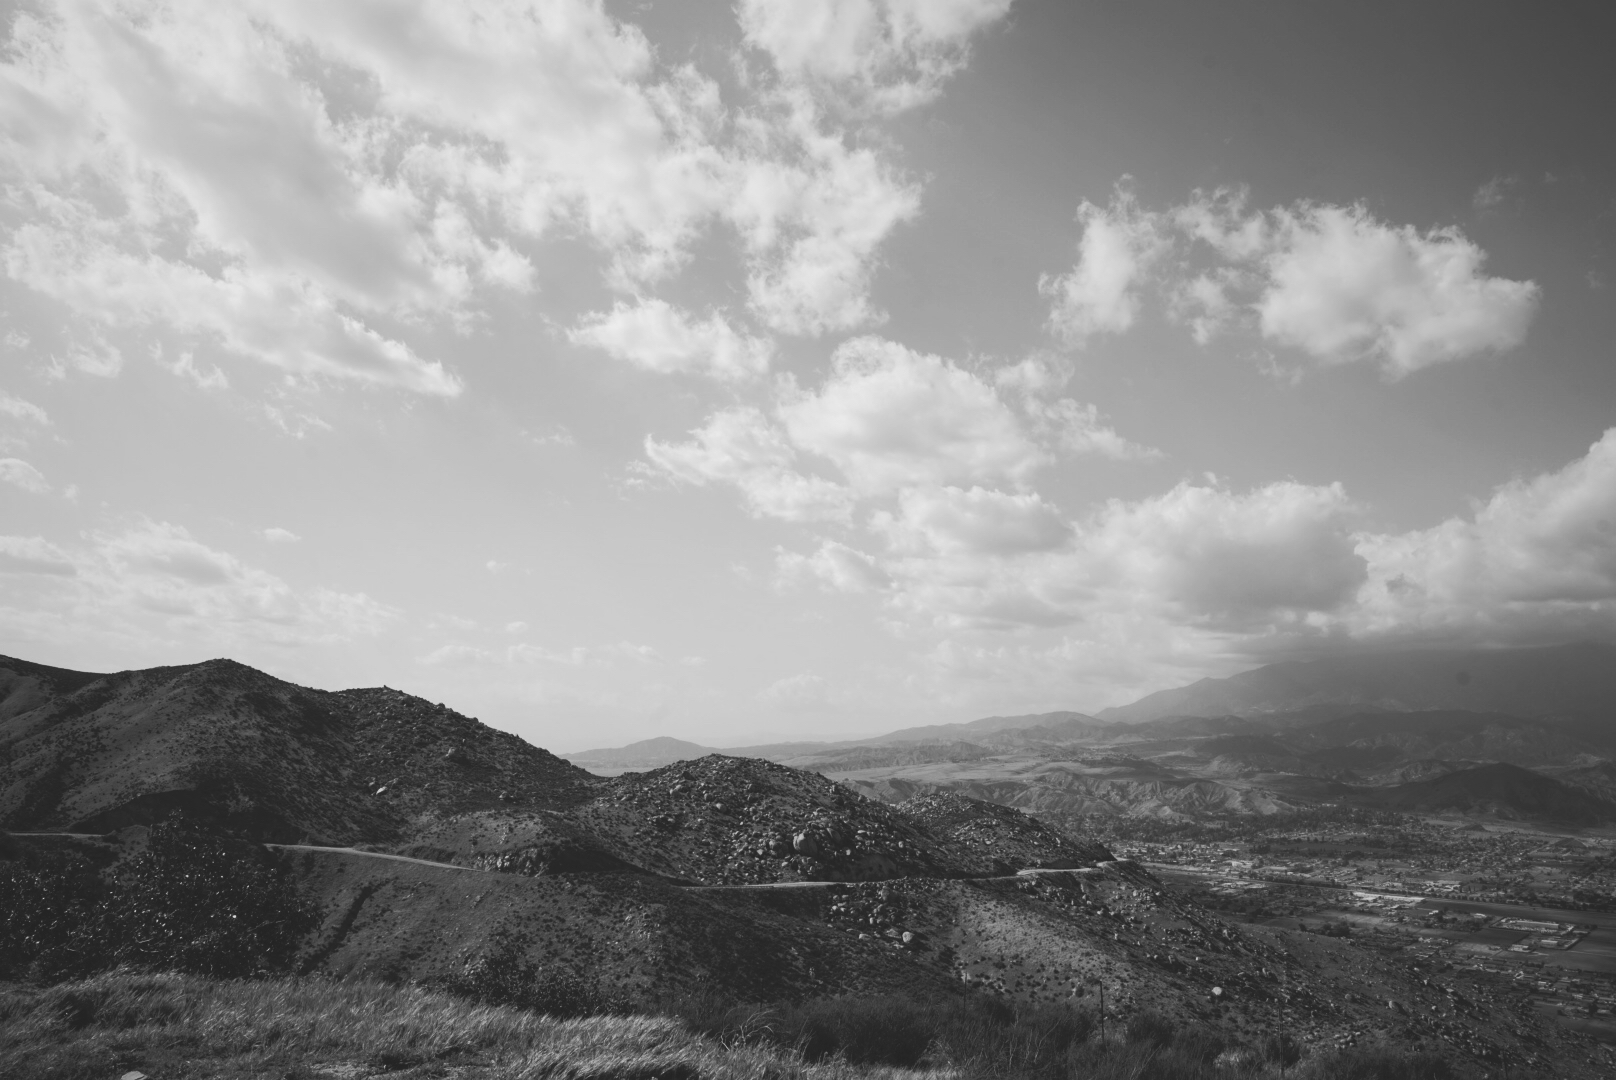 Angeles National Forest in black and white